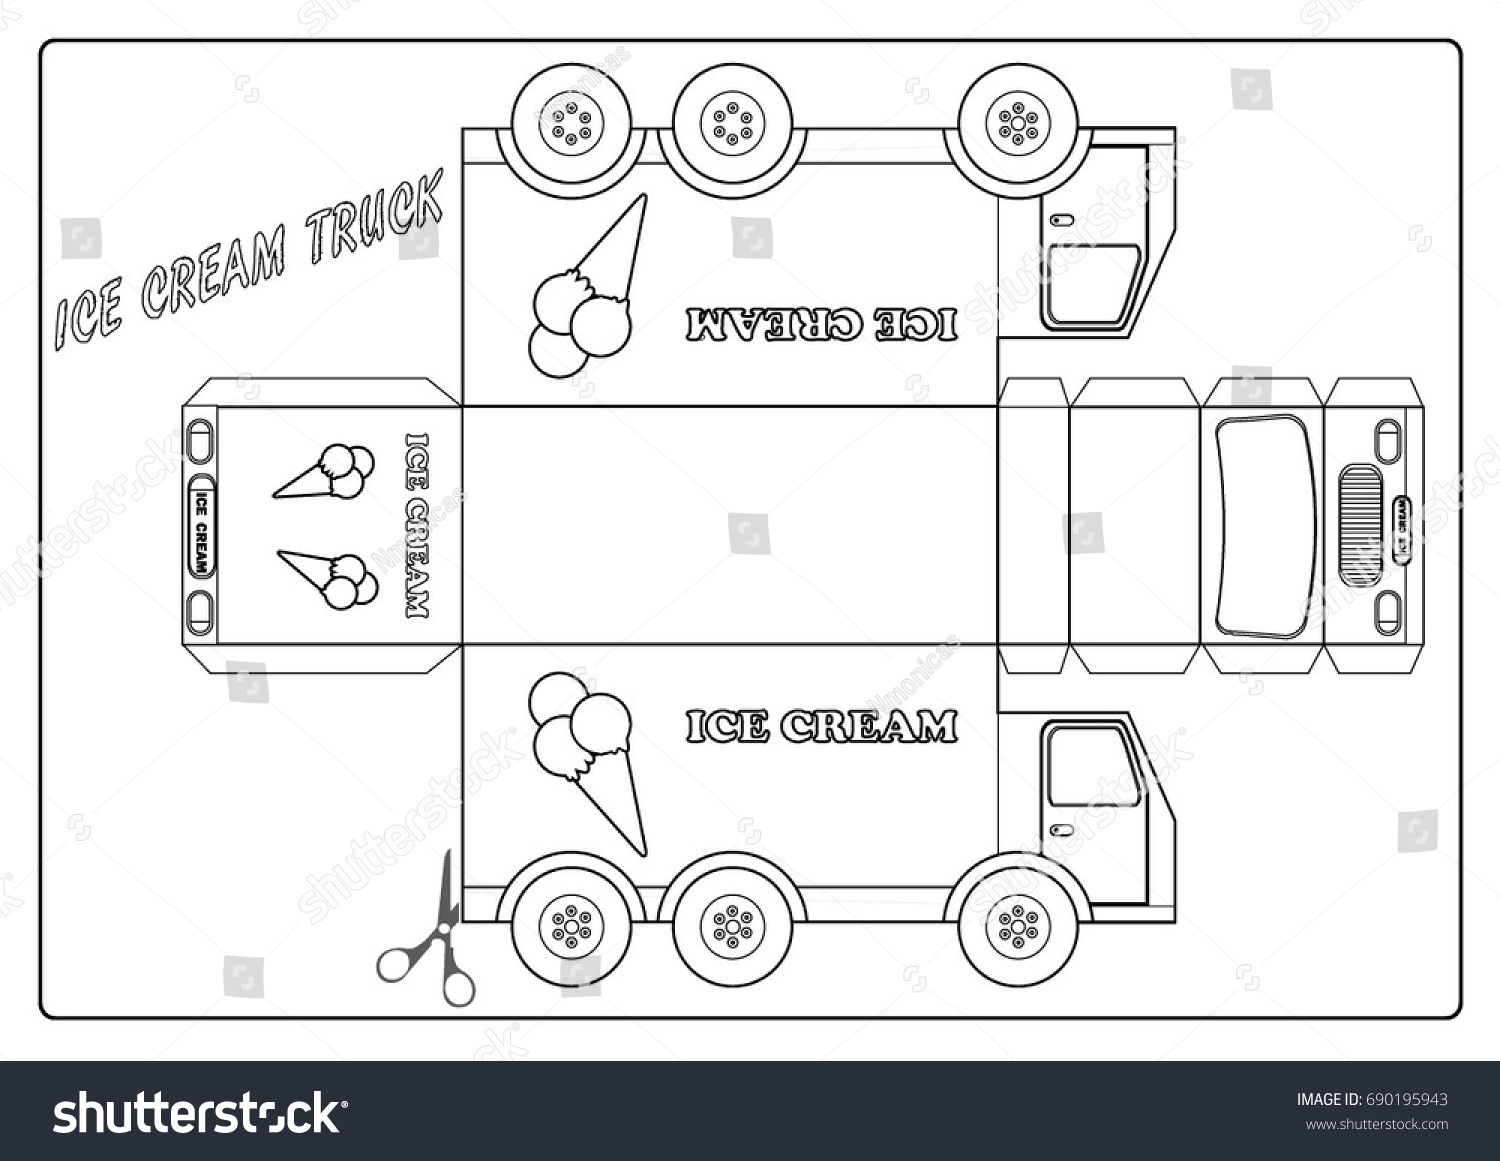 Coloring Page Ice Cream Truck Stock Vector 690195943